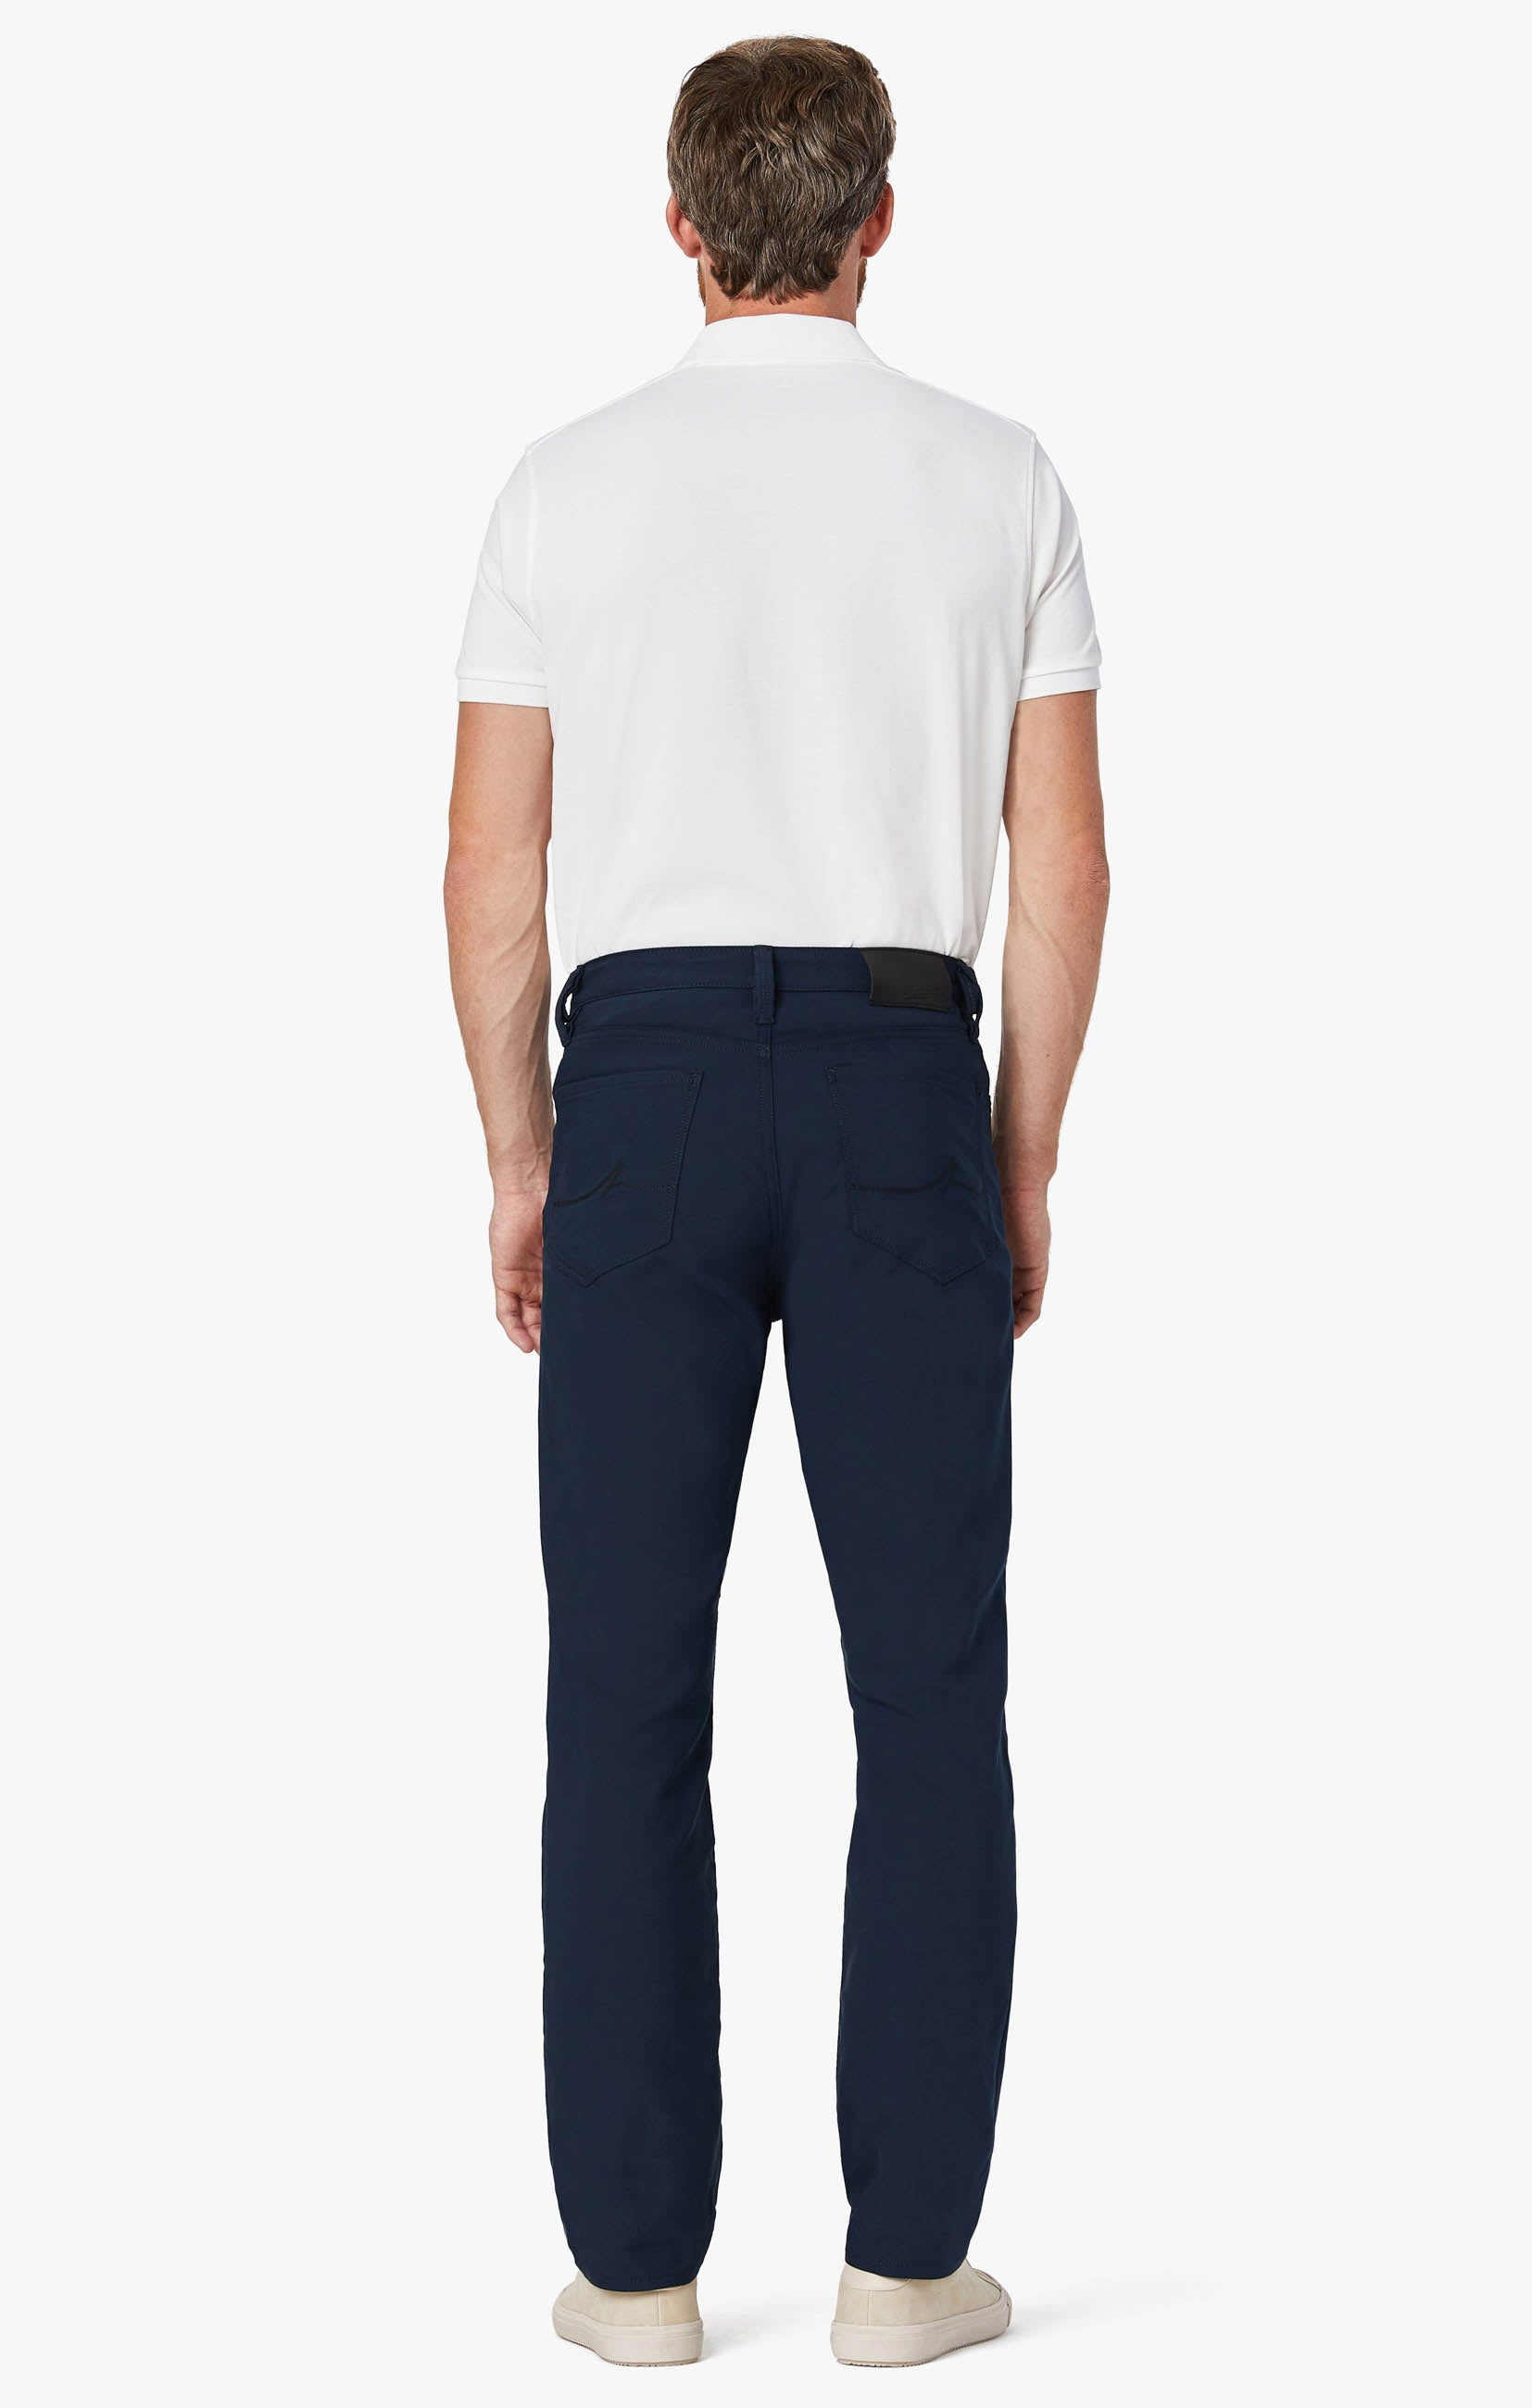 Charisma Classic Fit Pants In Navy Commuter Image 3